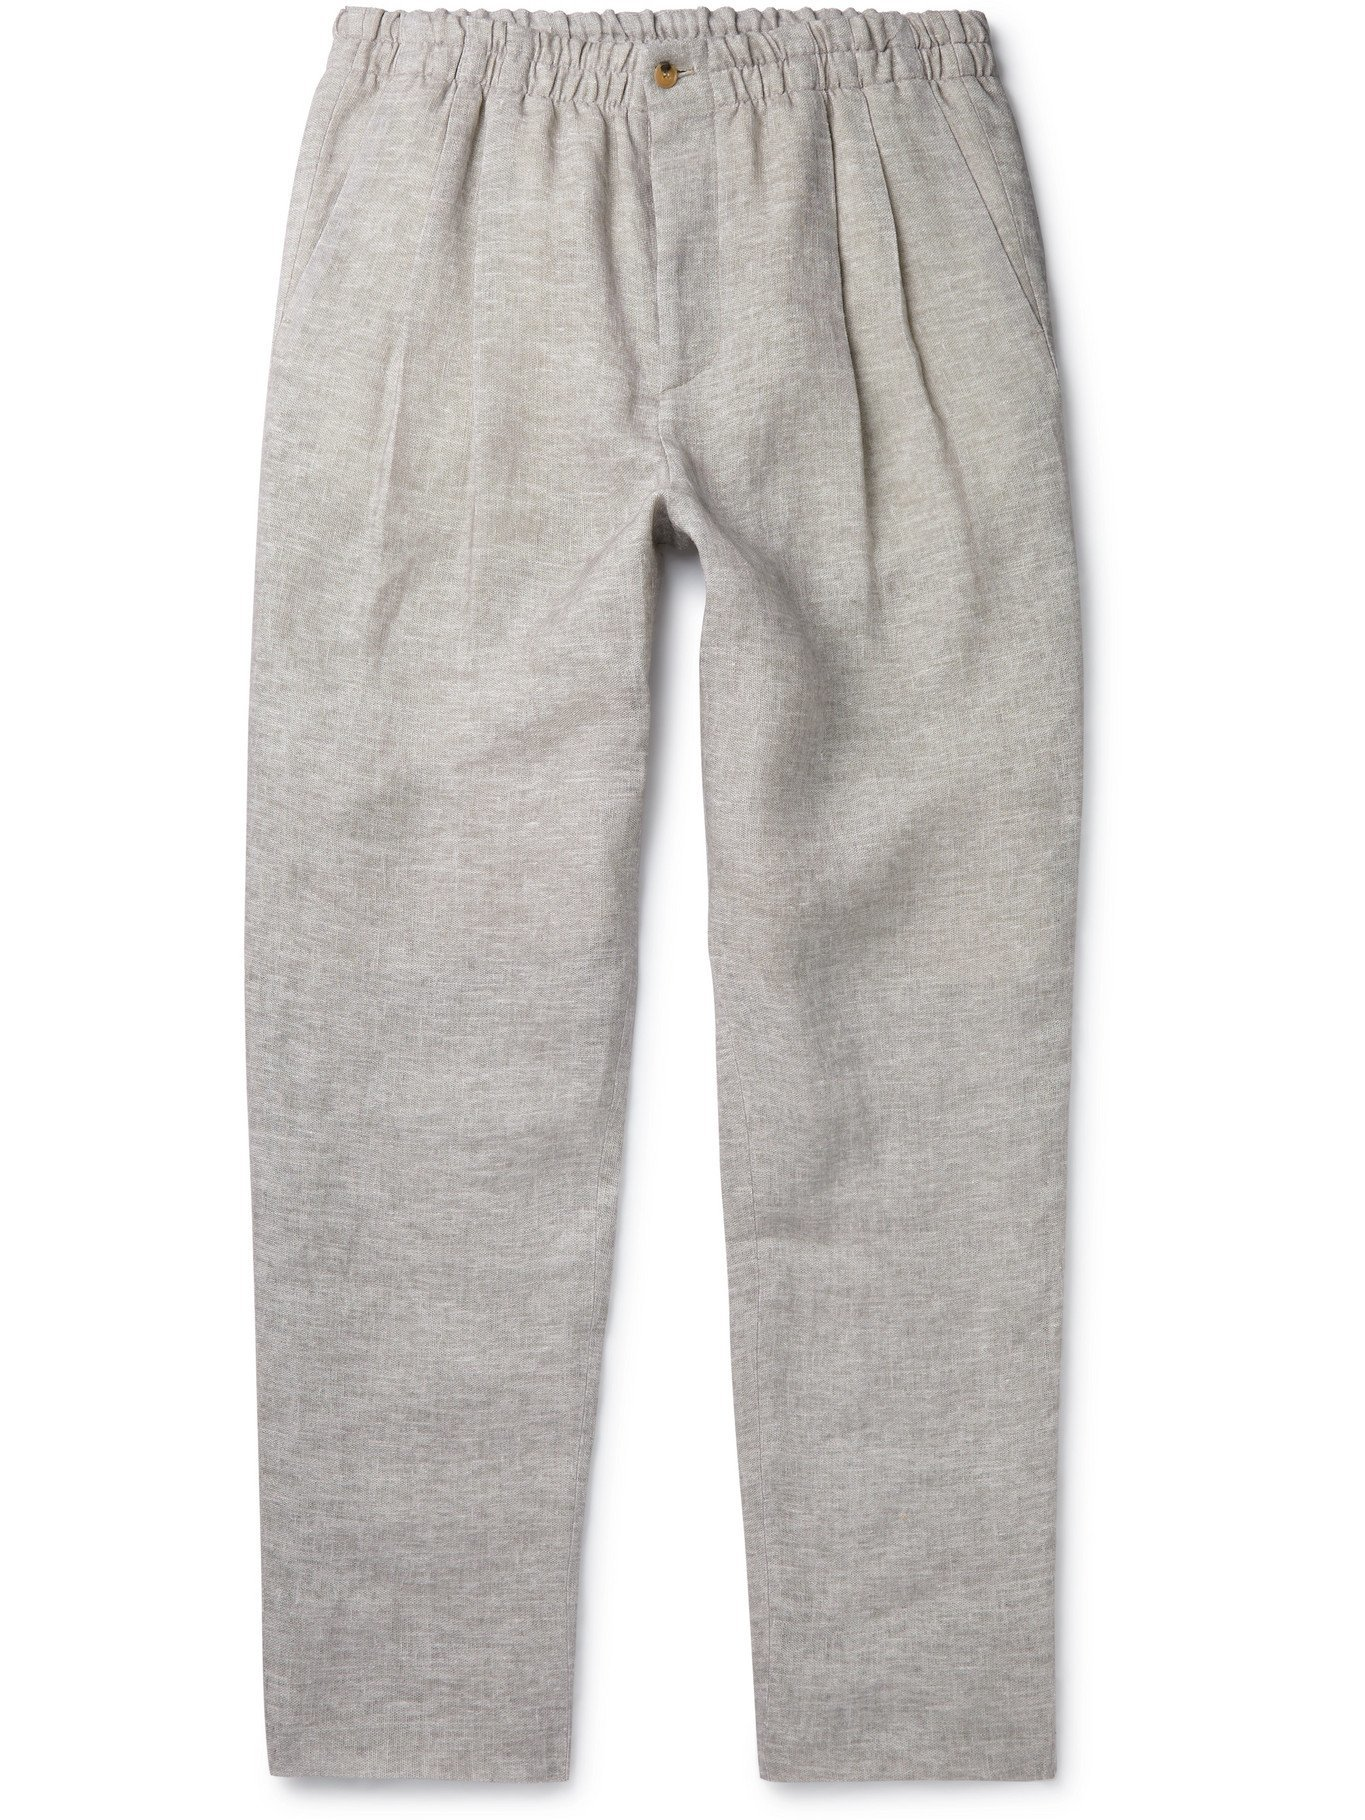 GIORGIO ARMANI - Tapered Pleated Mélange Linen-Piqué Trousers - Gray - IT 52